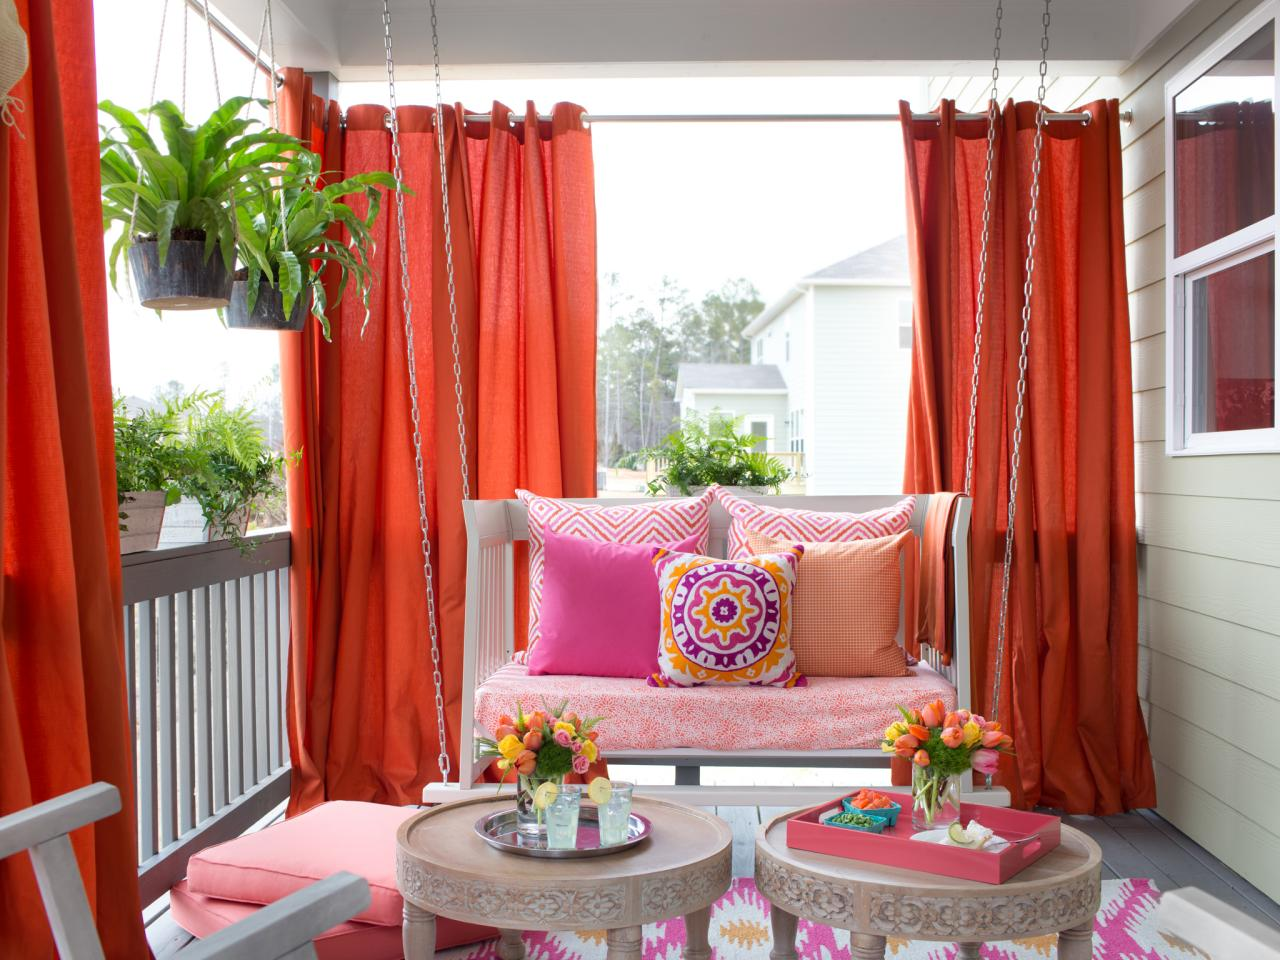 Patio decorating ideas for spring interior design styles for Patio decorating photos